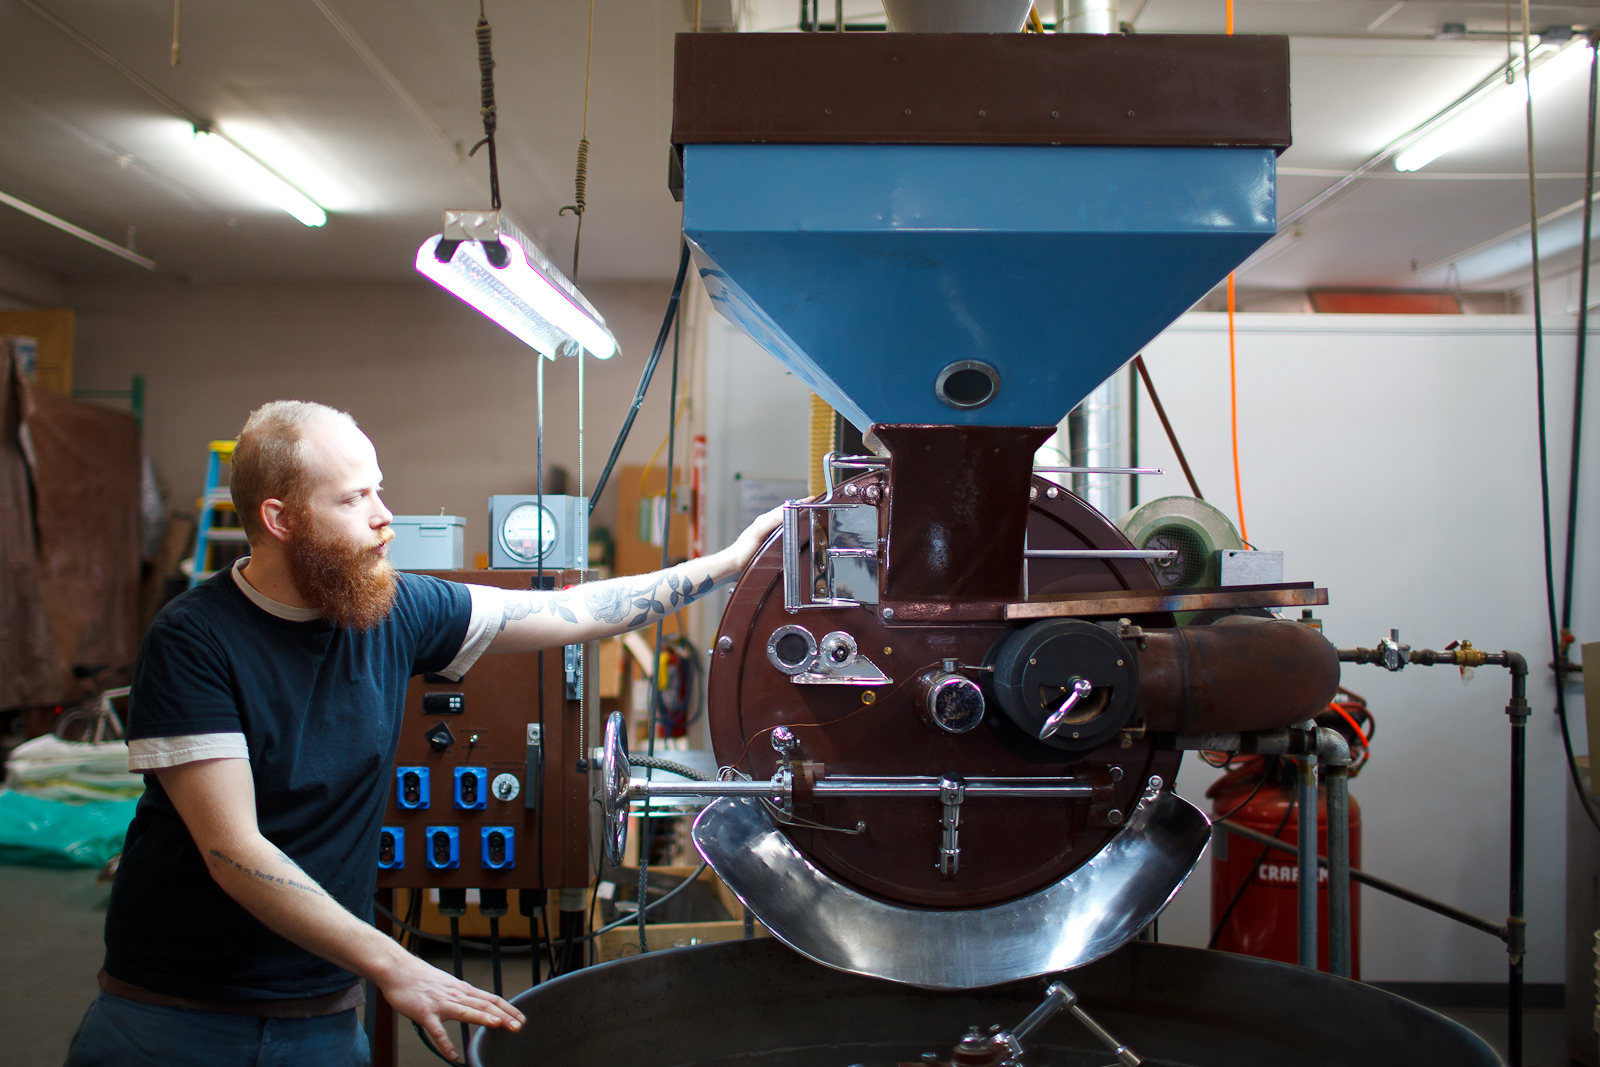 Erich Rosenberg showing us one of two large roasters, refurbished from the 60s